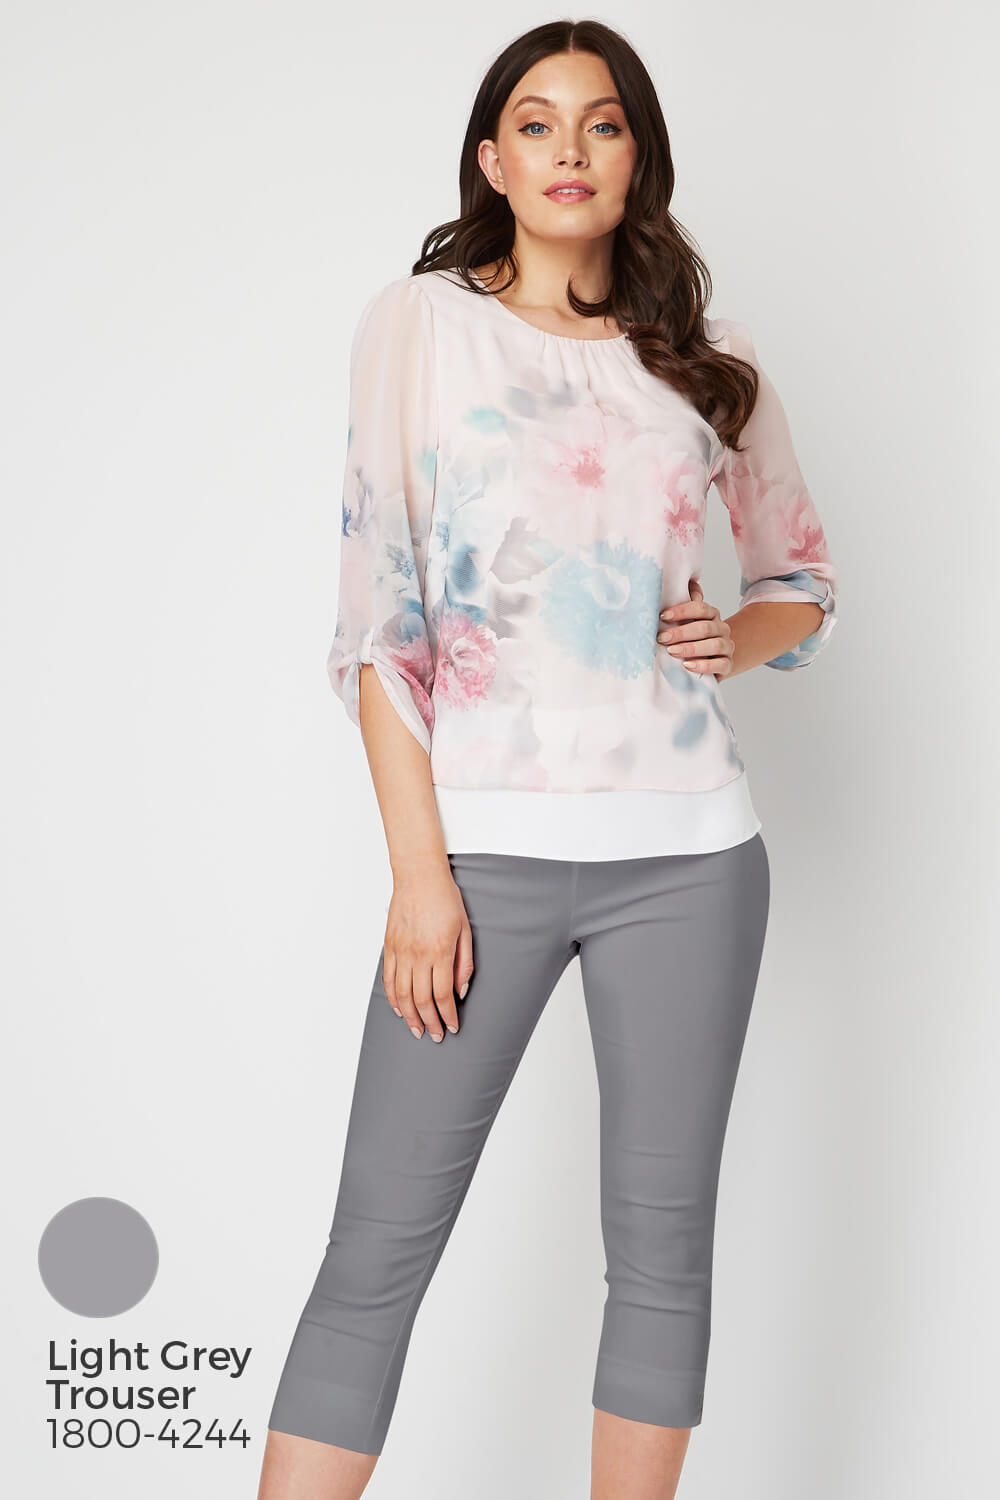 Roman-Originals-Womens-3-4-Length-Sleeve-Floral-Overlay-Top thumbnail 19